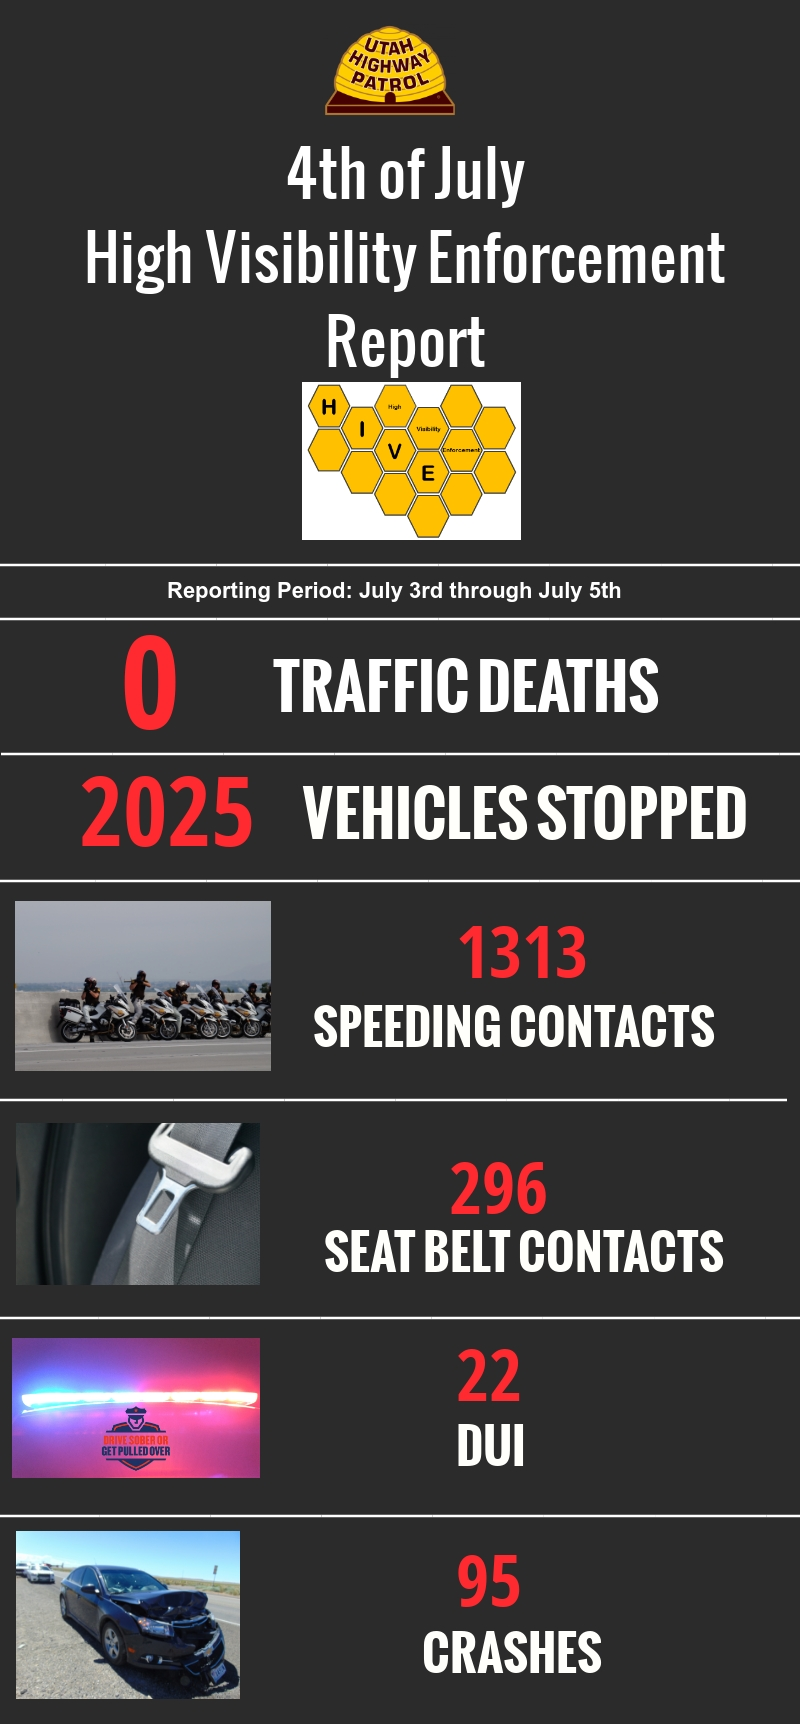 Report on high visibility enforcement conducted by UHP for the 4th of July. Total Enforcement Stops: 1833 Speeding Violations: 1078 Seatbelt Violations: 255 DUI: 15 CMV Enforcement Stops: 58 CMV Inspection Stops: 53 Total Crashes: 91 Total Injury Crashes: 11 Motorist Assists: 467 Total Arrest(including Misd and Felony): 35